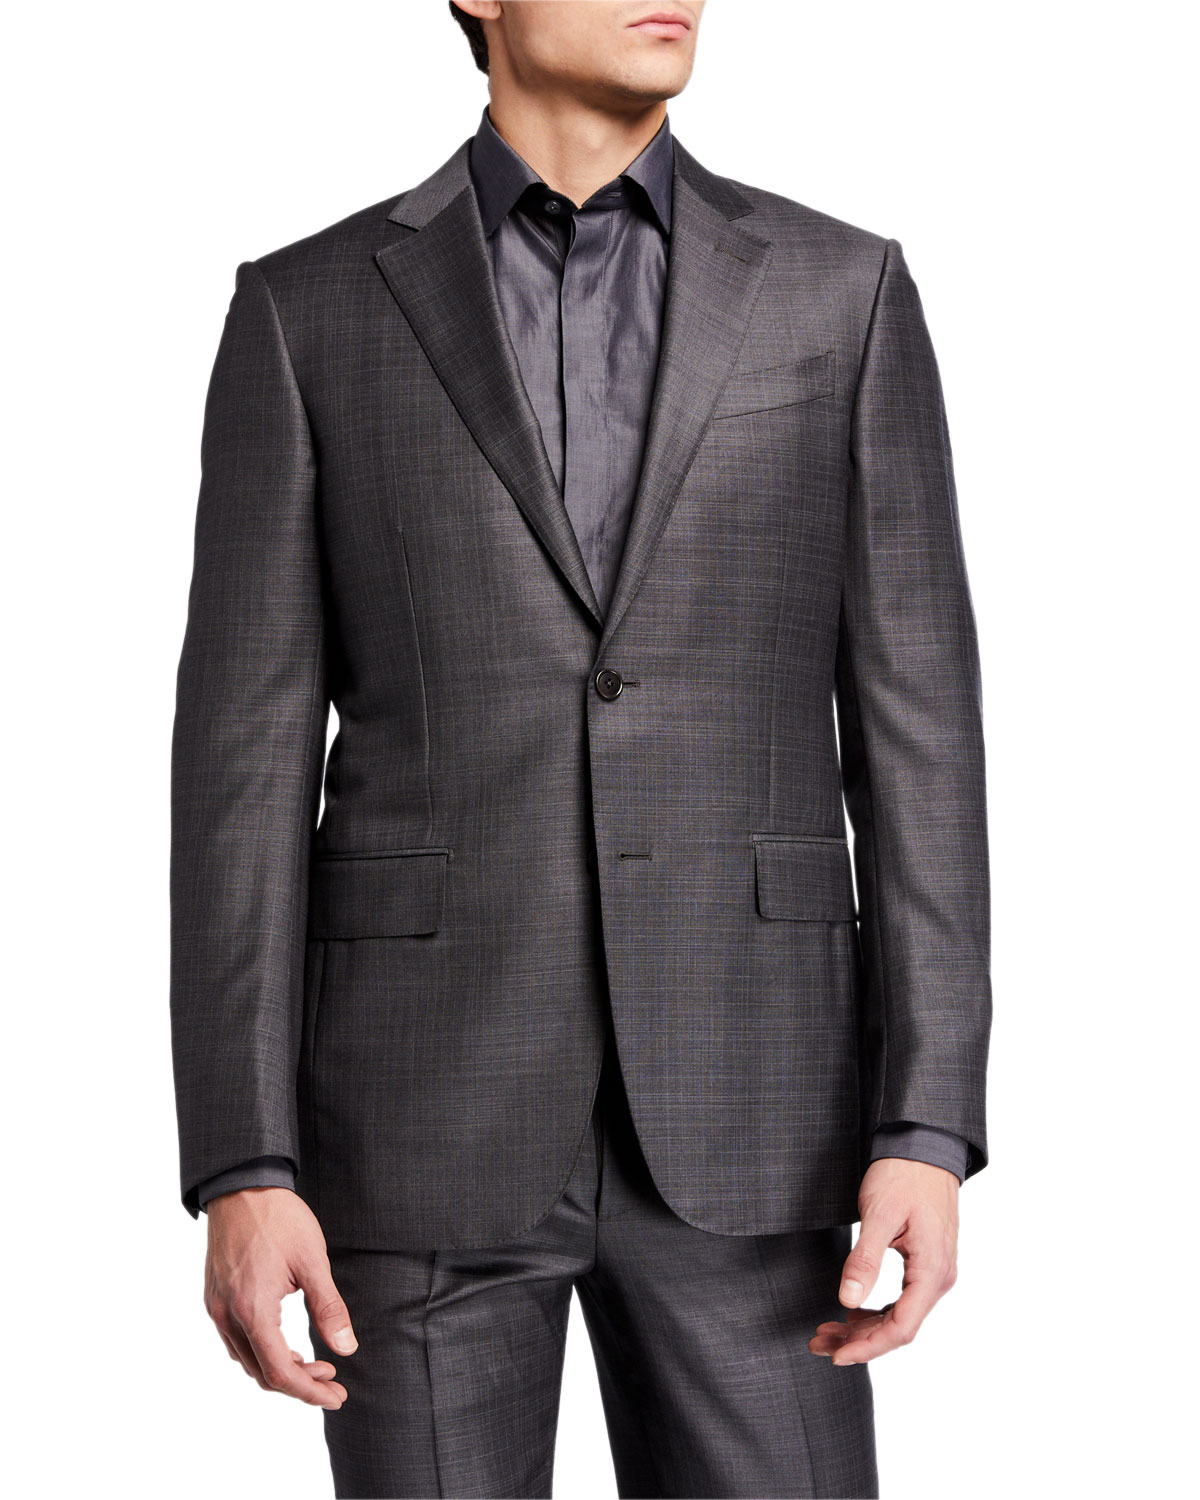 Ermenegildo Zegna Men's Tonal Plaid Two-Piece Wool Suit